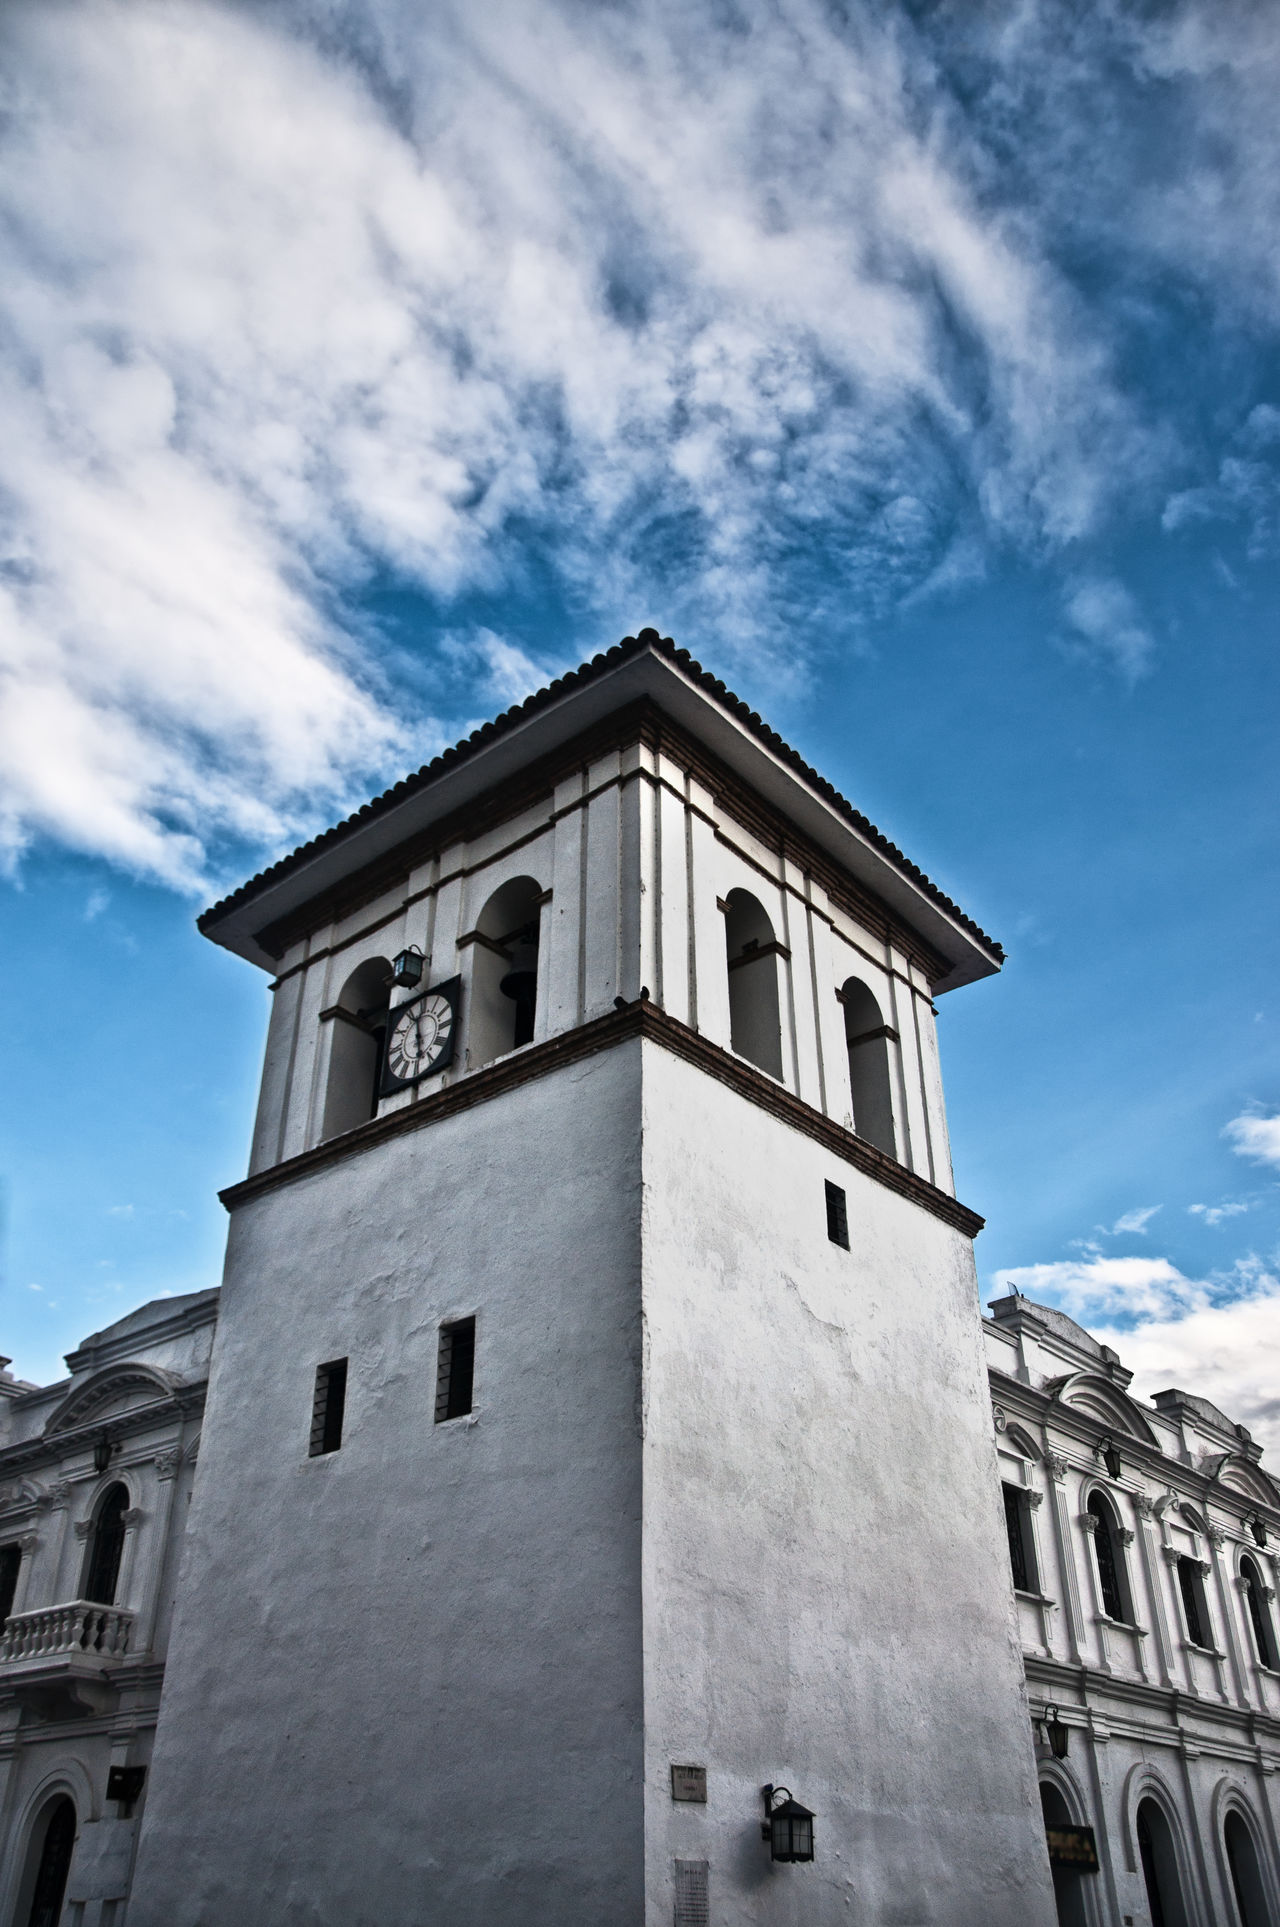 The colonial clock tower of Popayan, Colombia. Architectural Architecture Blue Building Clock Clocktower Clouds Colonial Day Exterior Historic History Landmark Old Outdoors Religion Sky Spanish Street Time Tower Travel Urban White